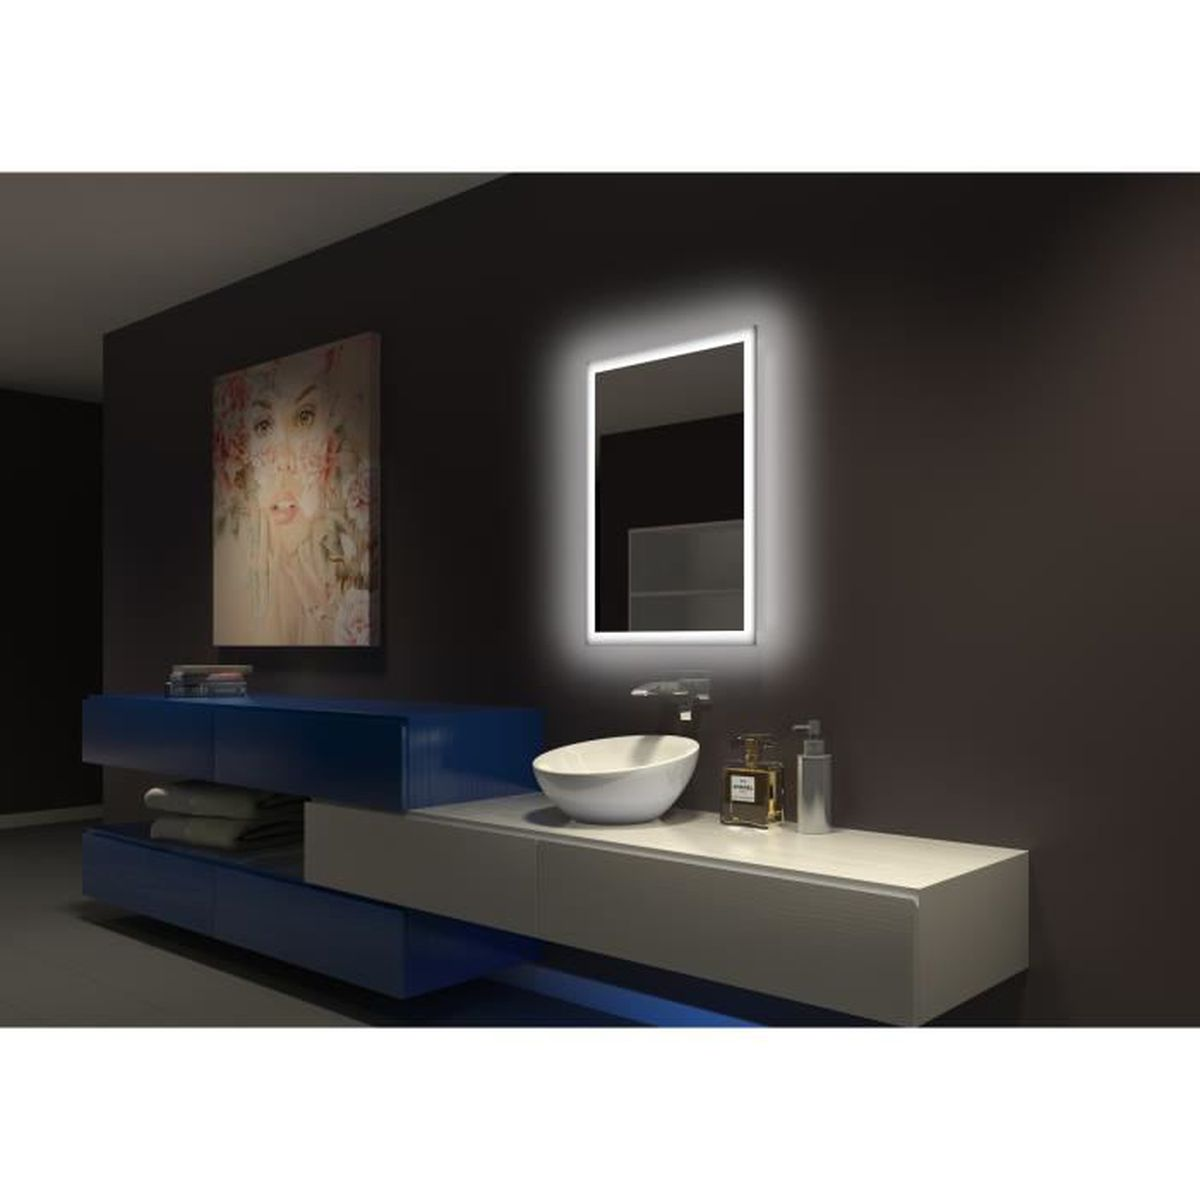 miroir led r tro clair 60 x 81 cm achat vente miroir salle de bain cdiscount. Black Bedroom Furniture Sets. Home Design Ideas